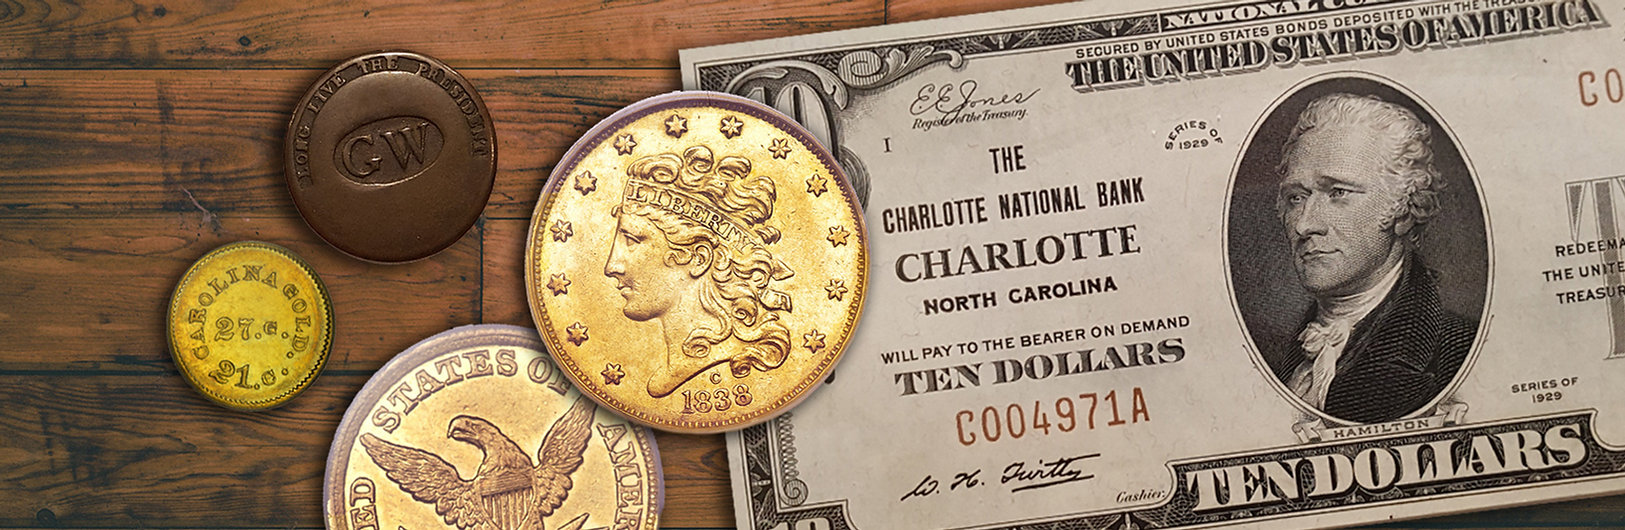 charlotte rare coins header image of rare coins and paper money